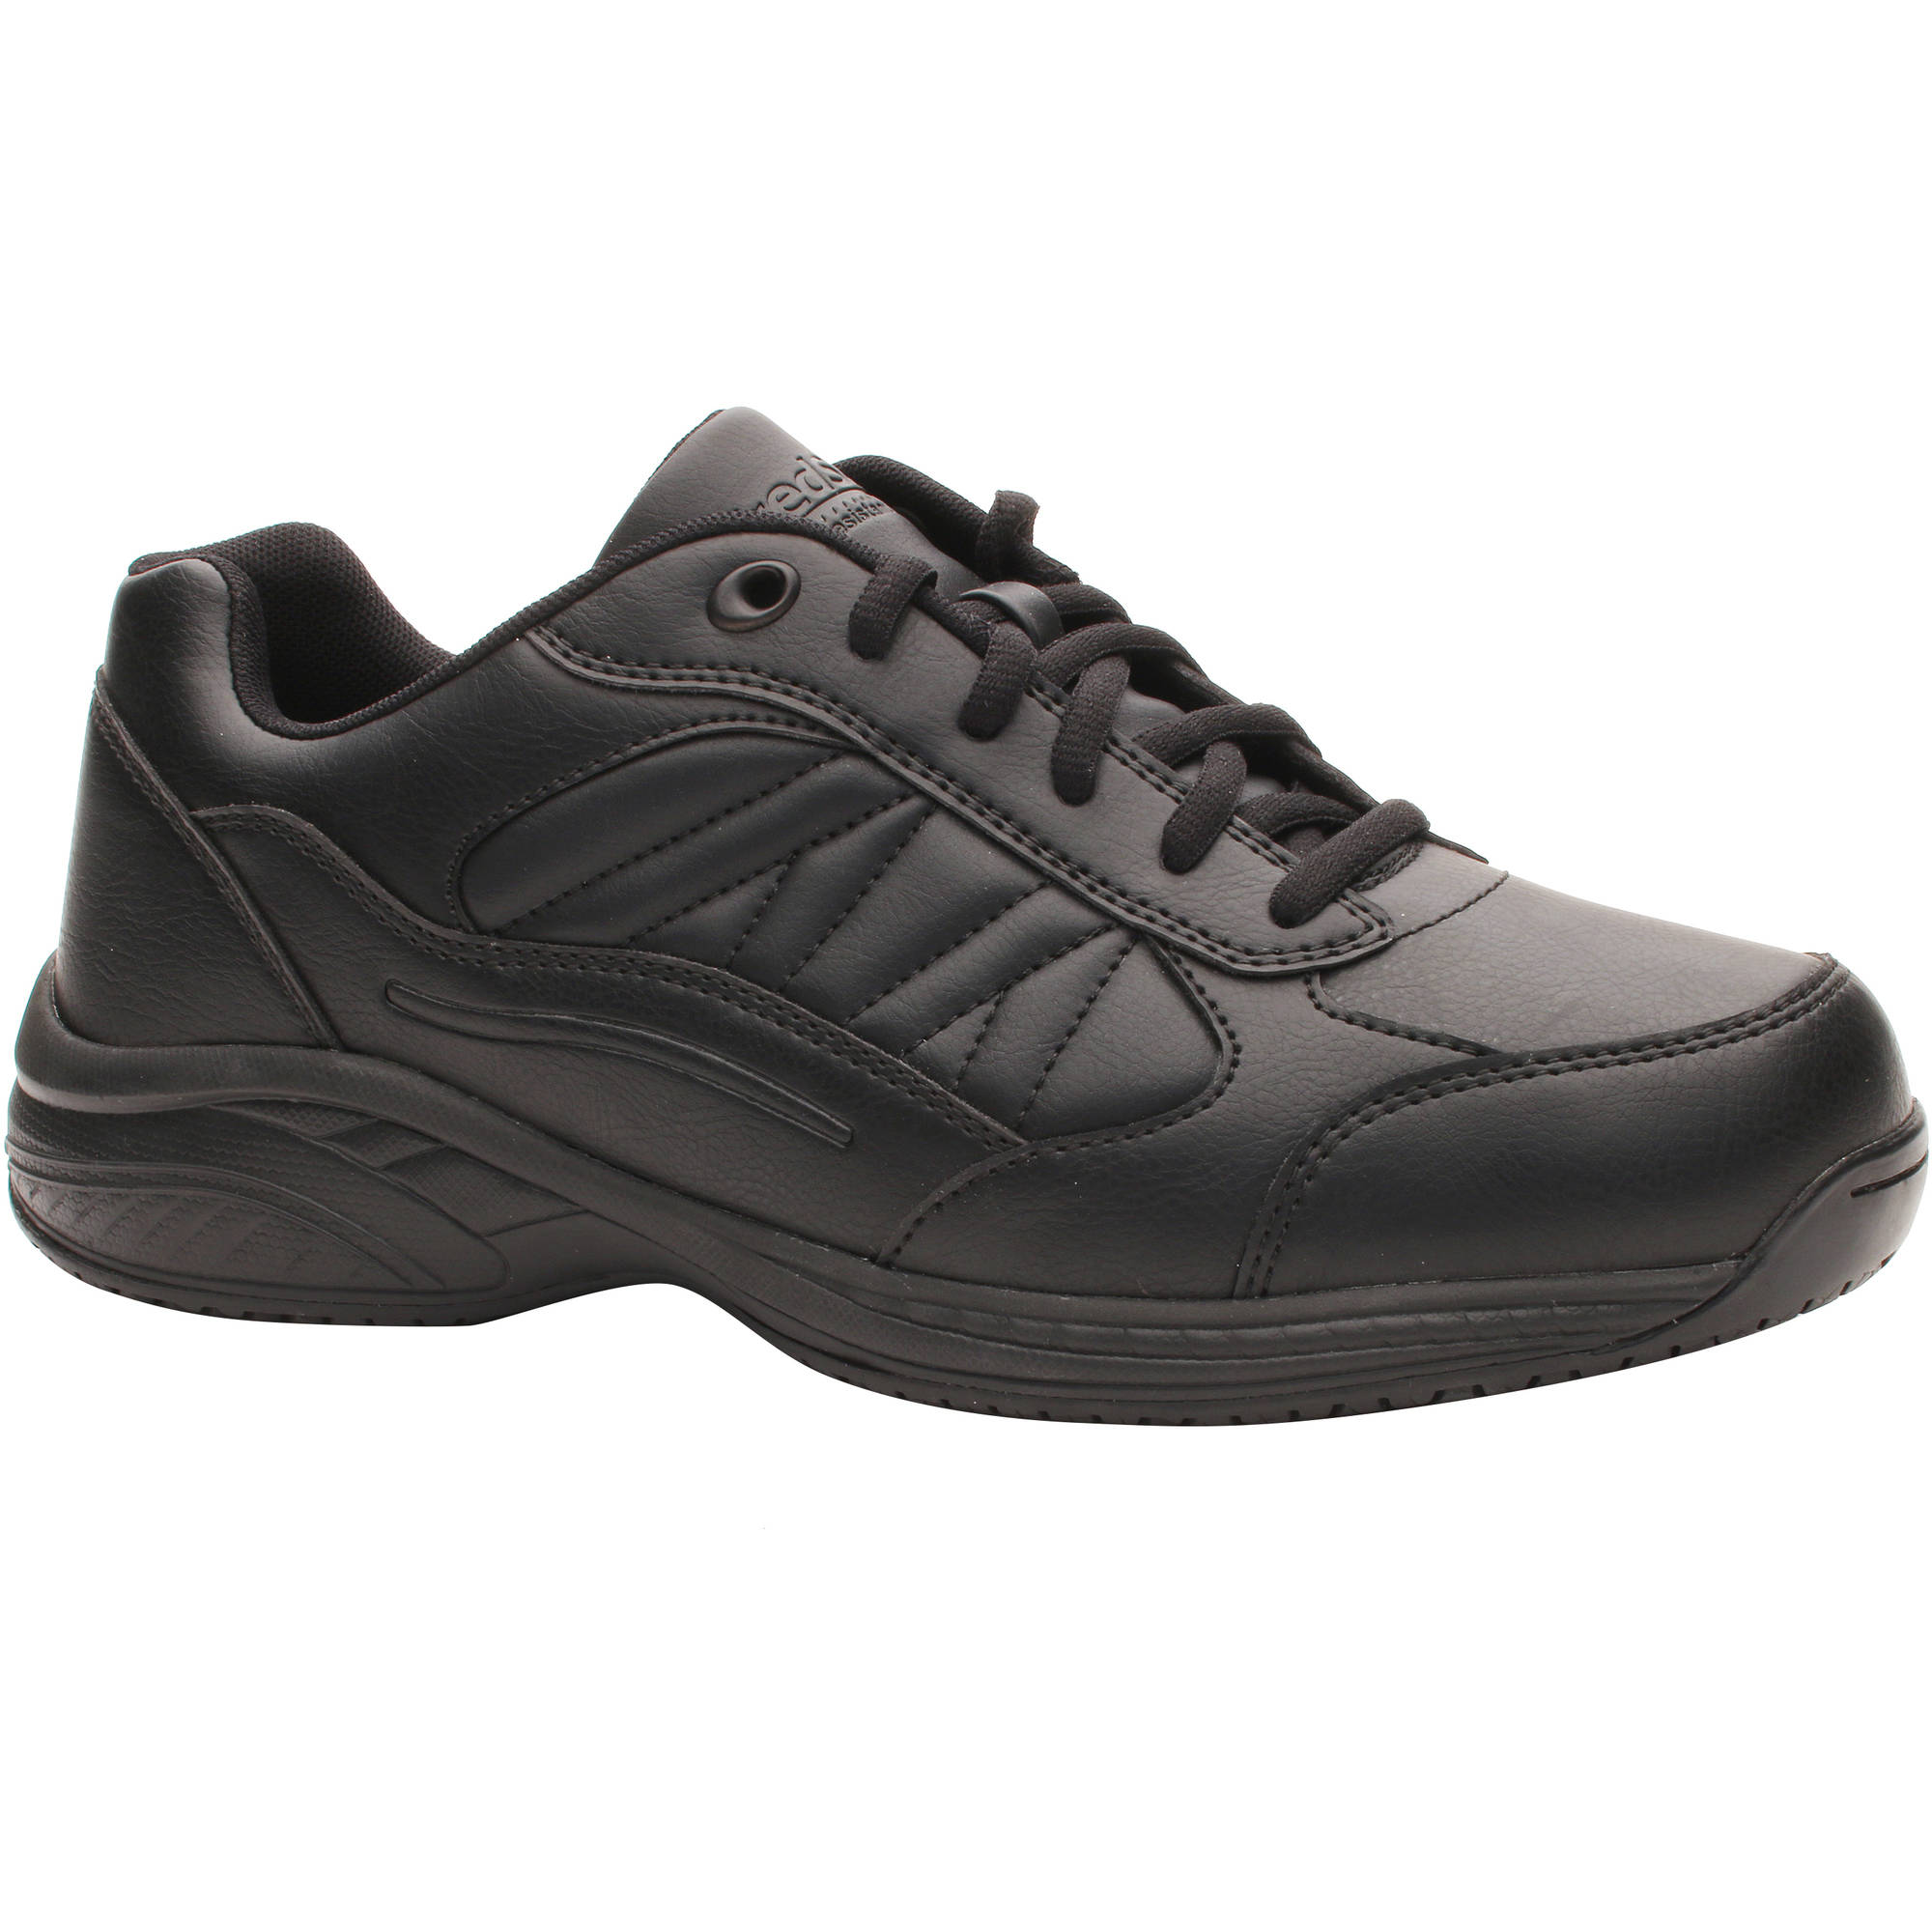 Tredsafe Men's Mario Slip-Resistant Athletic Shoe, Wide Width by